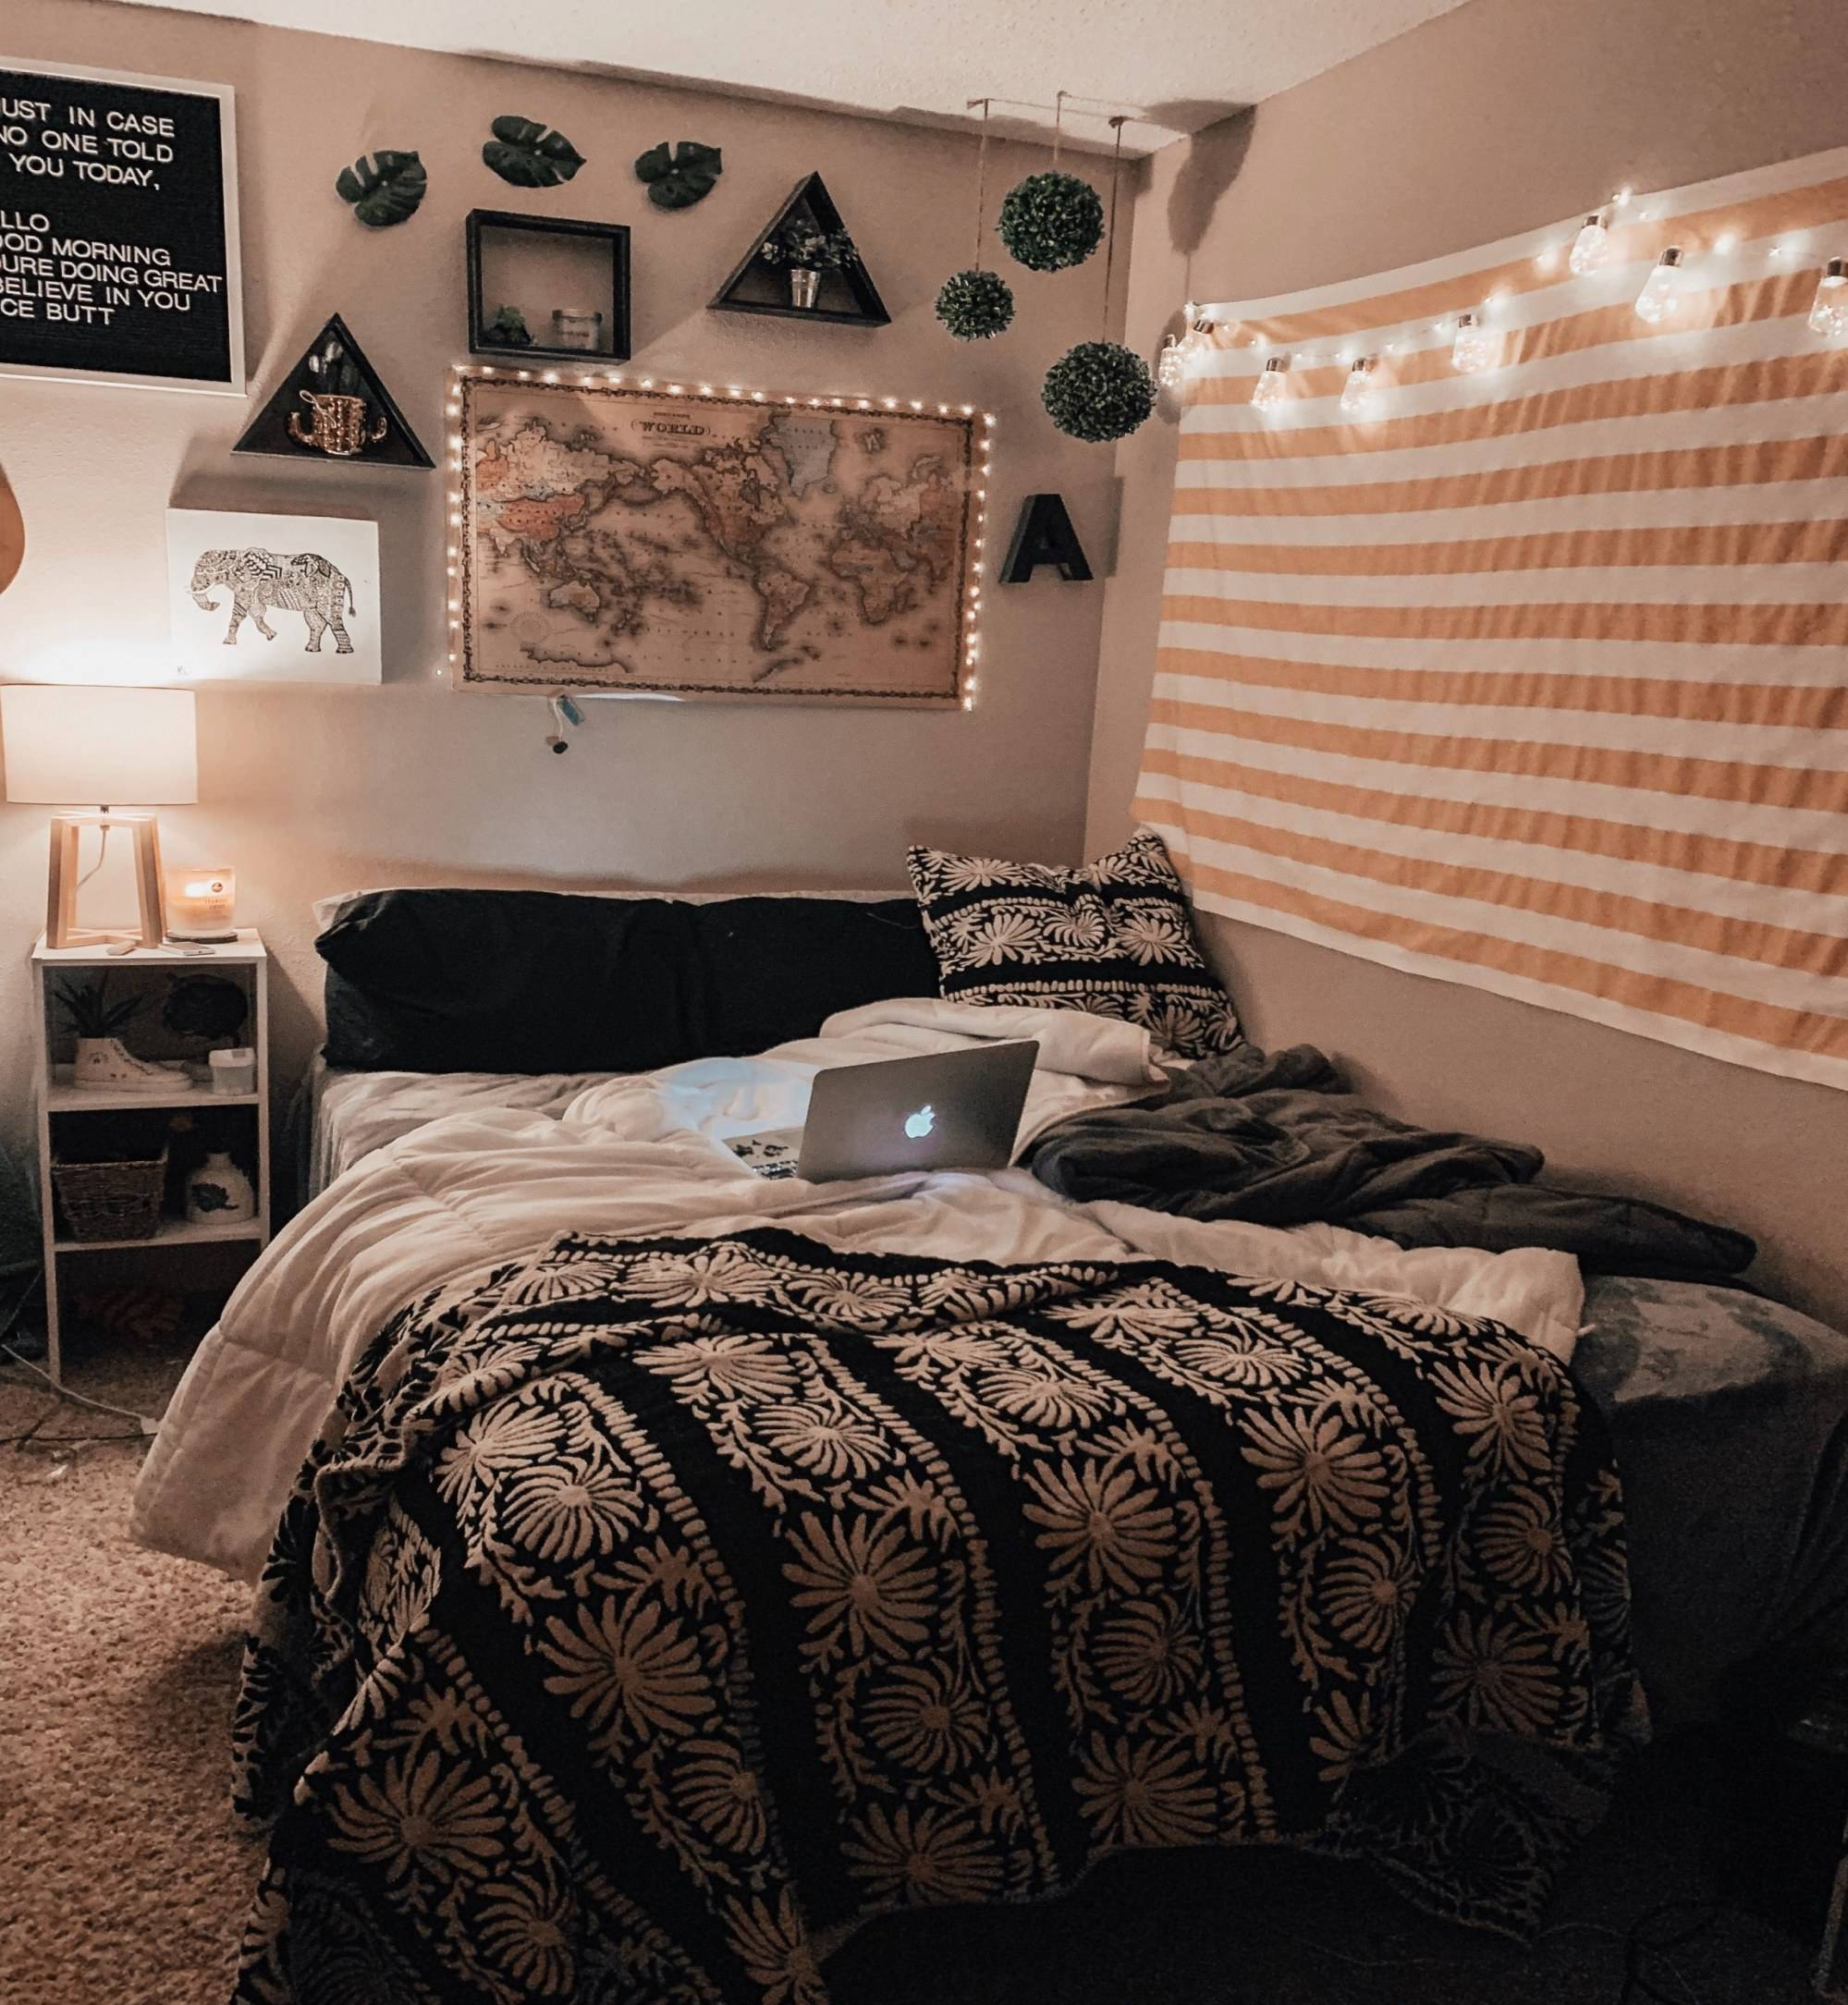 blue room ideas cute room ideas for teenage girl room roomdecor roomdesign of blue room ideas